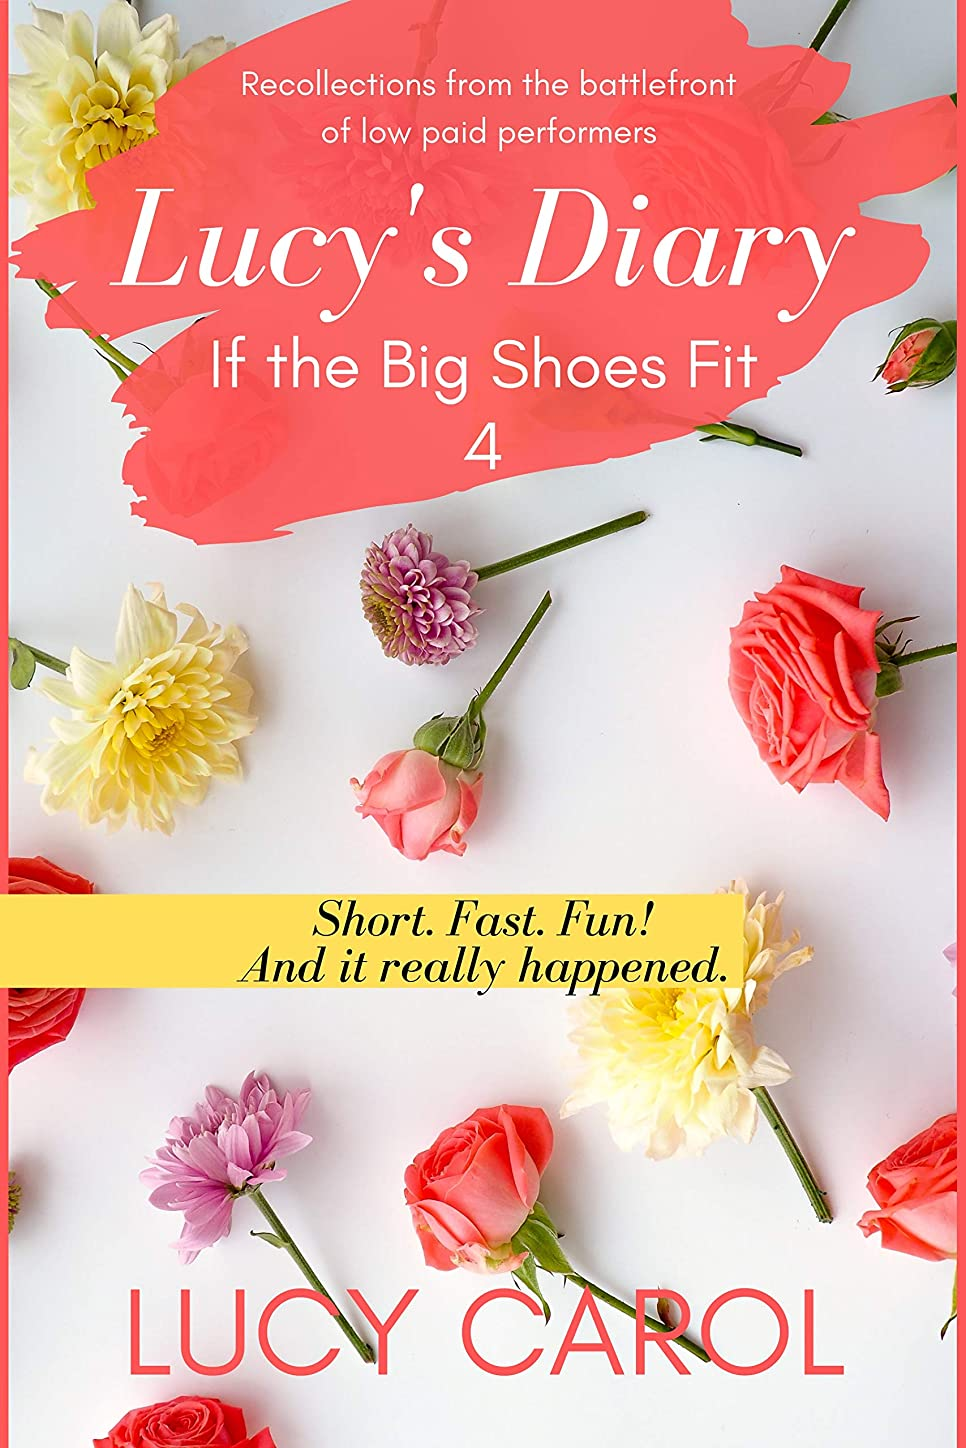 一瞬スポーツ人工的なIf the Big Shoes Fit (Lucy's Diary Book 4) (English Edition)